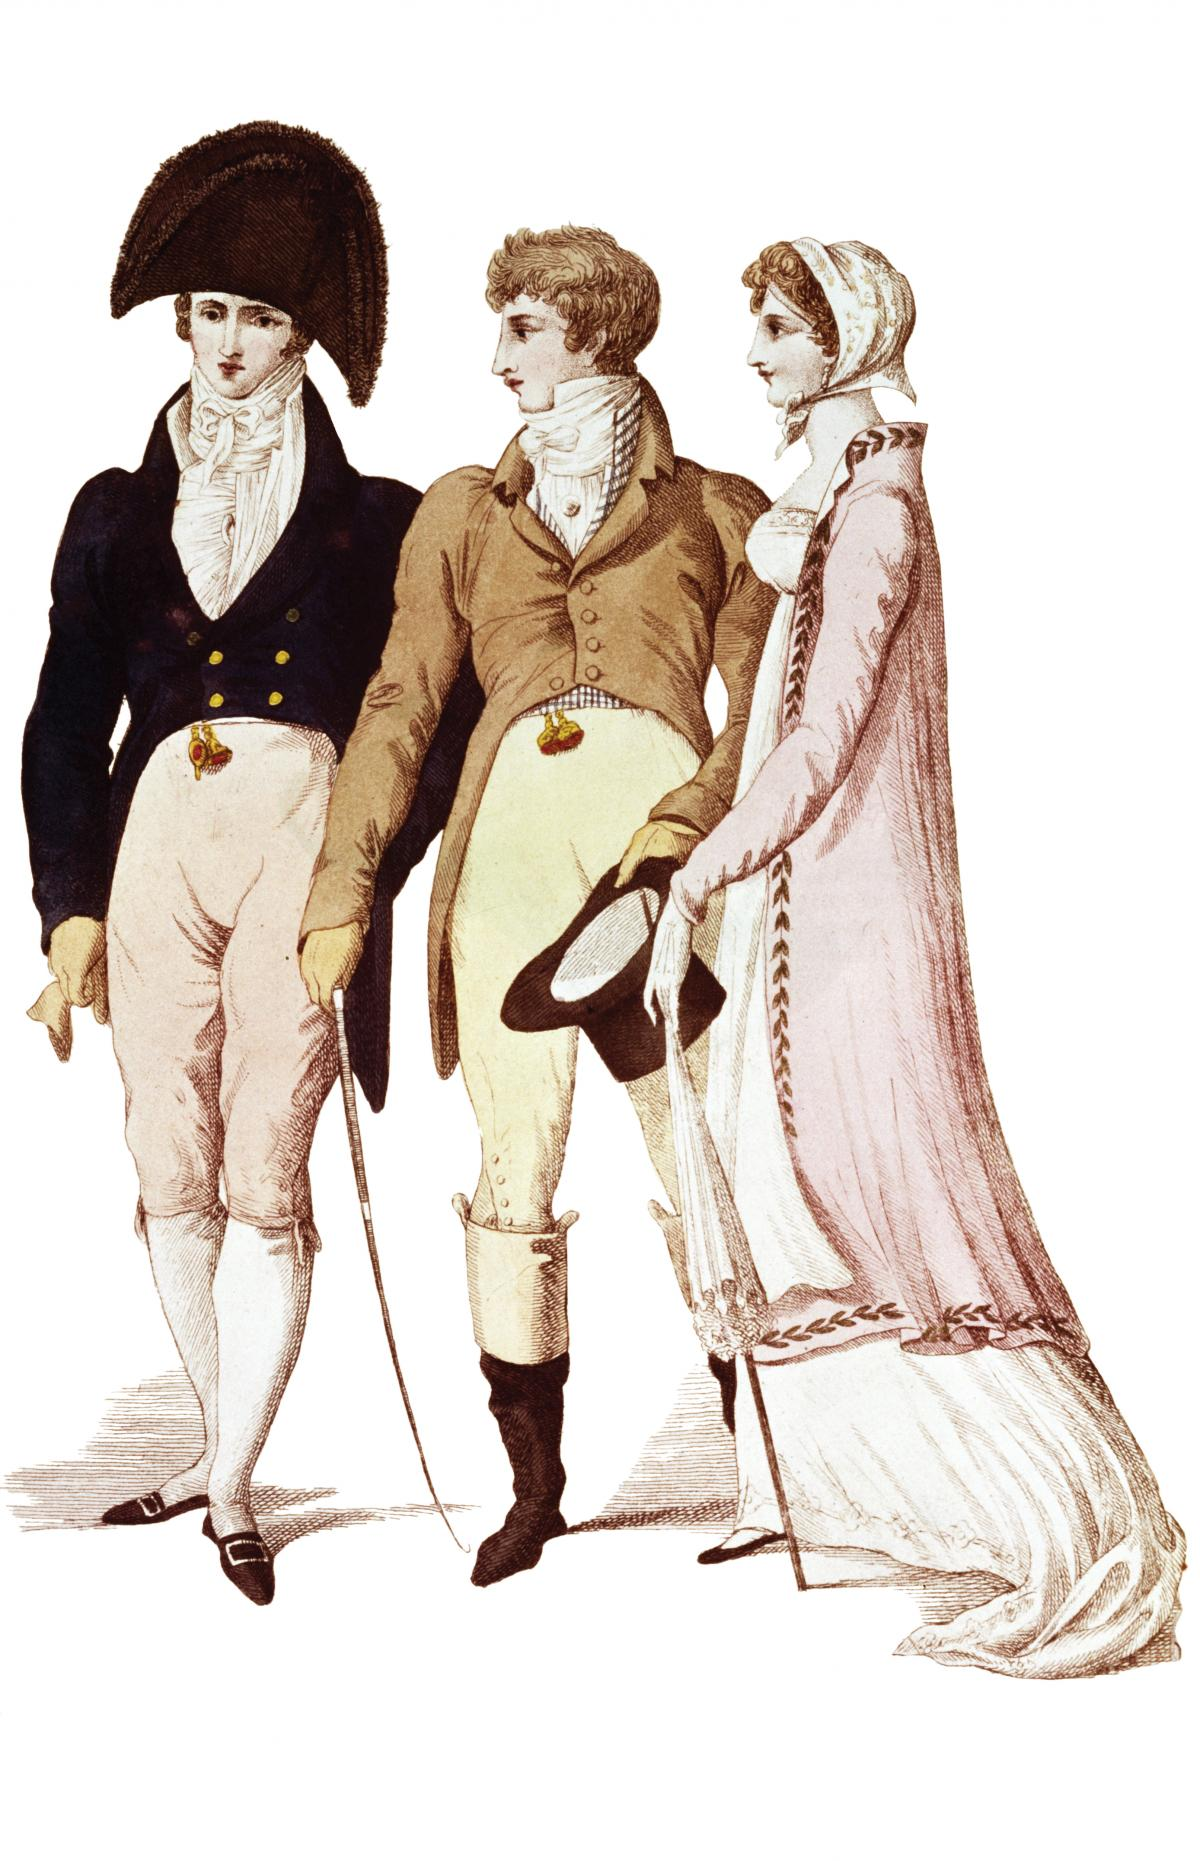 a naval officer in a cornered hat and dark coat, a wealthy man in a tan coat and white trousers, and a woman in a pink shawl, white dress, and matching bonnet